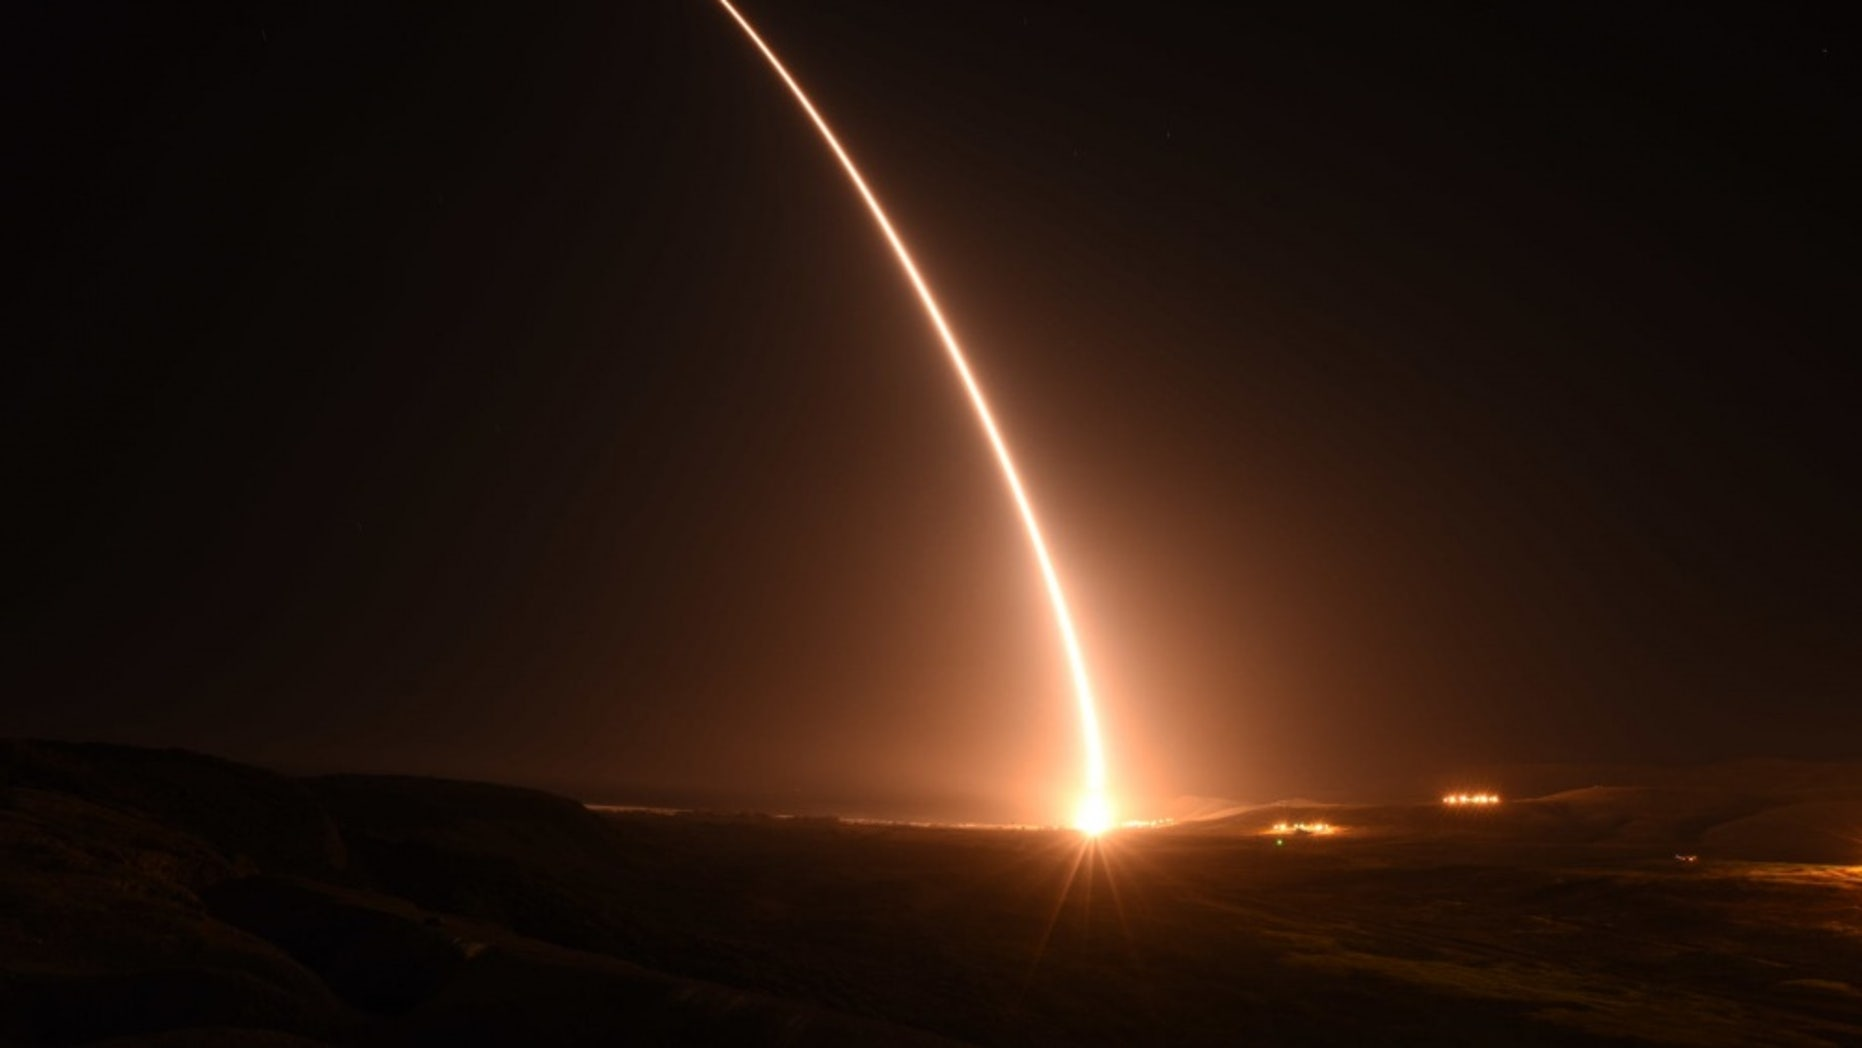 File photo - An unarmed U.S. Air Force Minuteman III intercontinental ballistic missile launches during an operational test at 1:23 a.m. Pacific Daylight Time Monday, May 14, 2018, at Vandenberg Air Force Base, Calif. (U.S. Air Force photo by Airman Aubree Milks)